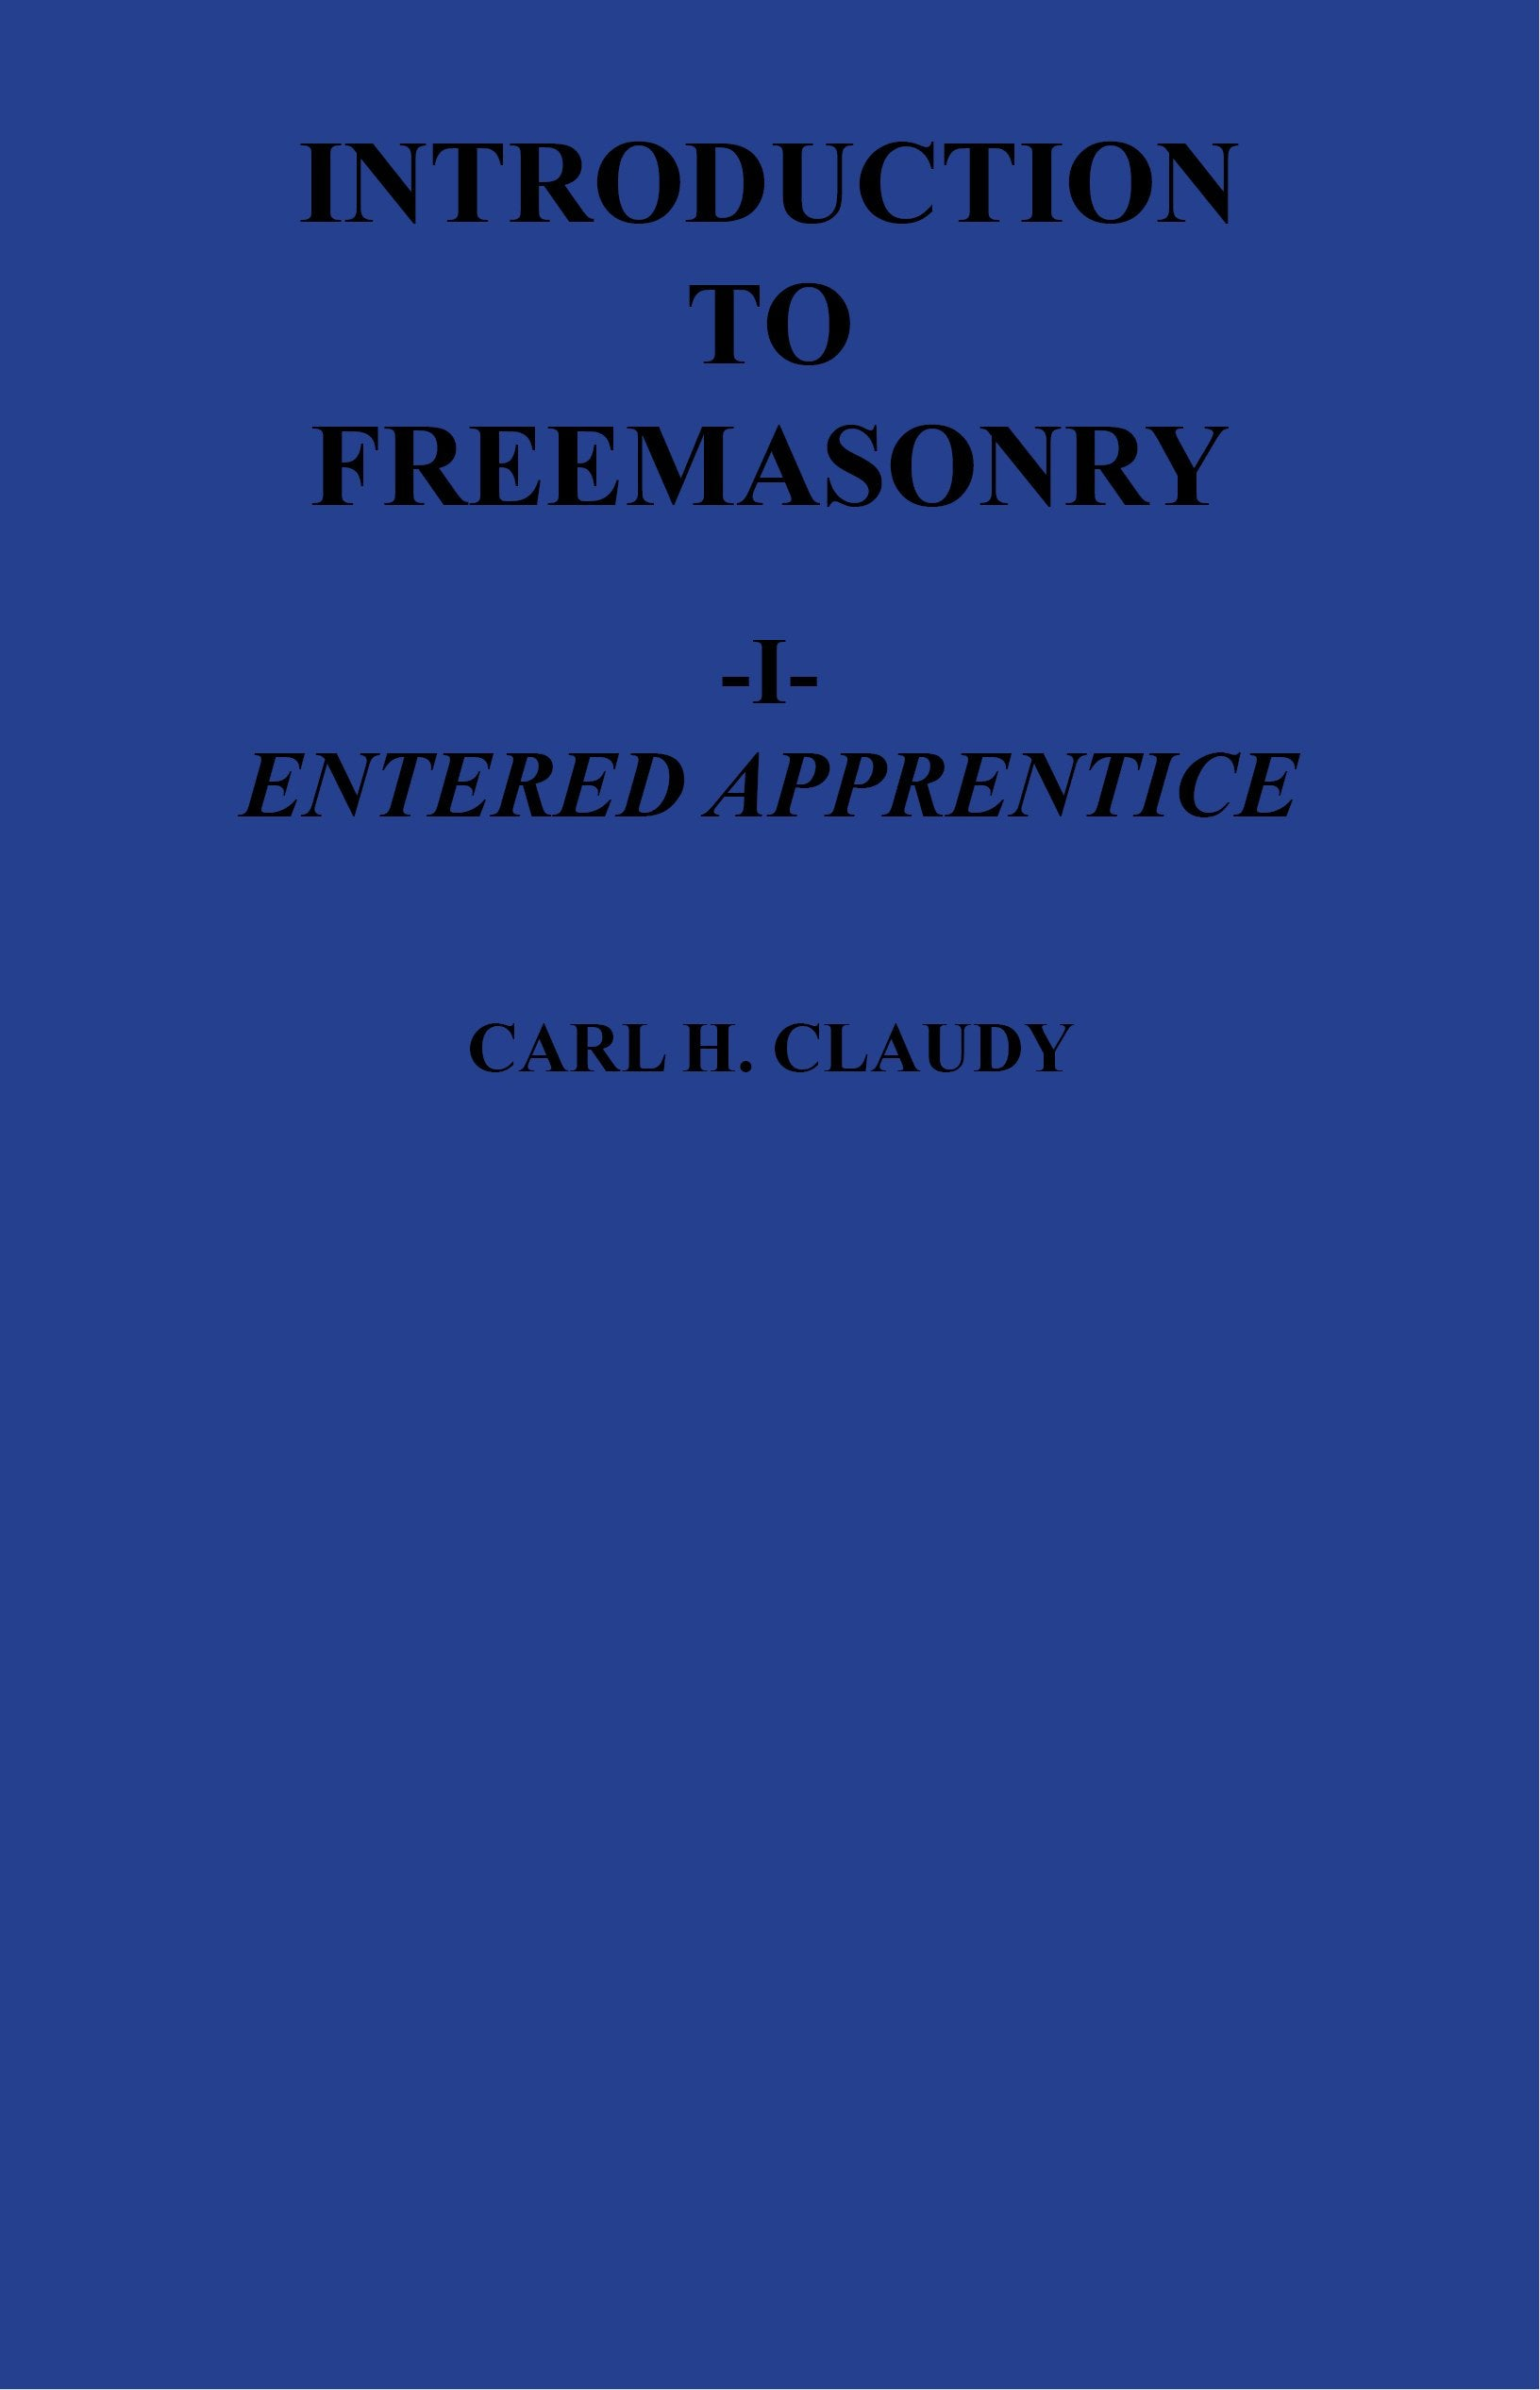 Introduction to Freemasonry - Entered Apprentice